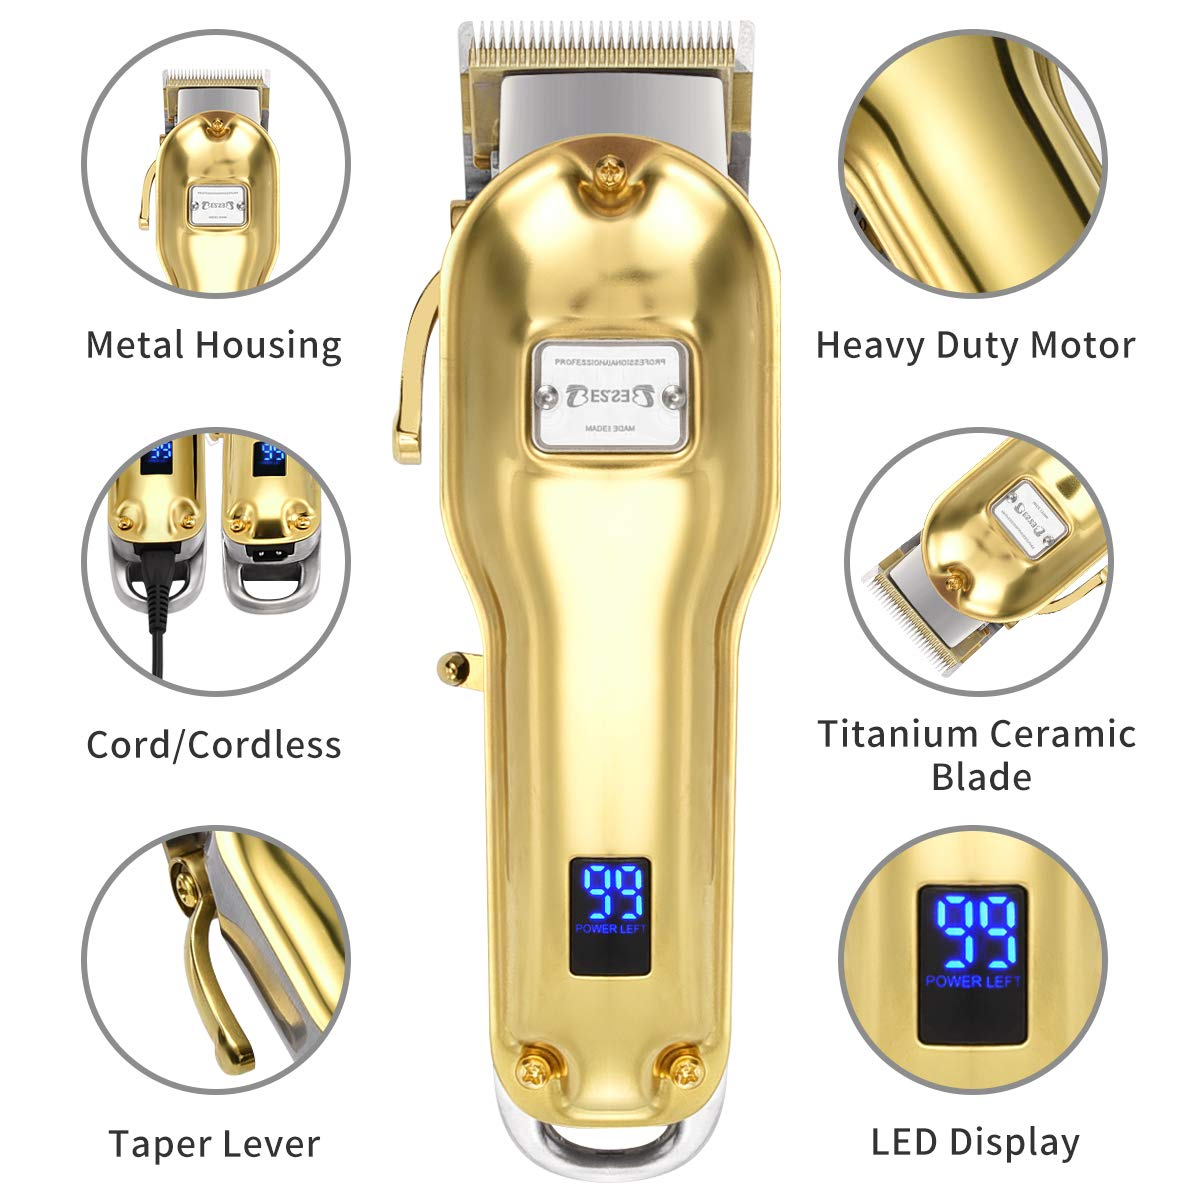 BESTBOMG Professional Cordless Haircut Kit Clippers for Men Rechargeable Hair Clippers Set LED Display with Stainless Steel Metal Housing Heavy Duty Motor for Men, Women, Kids